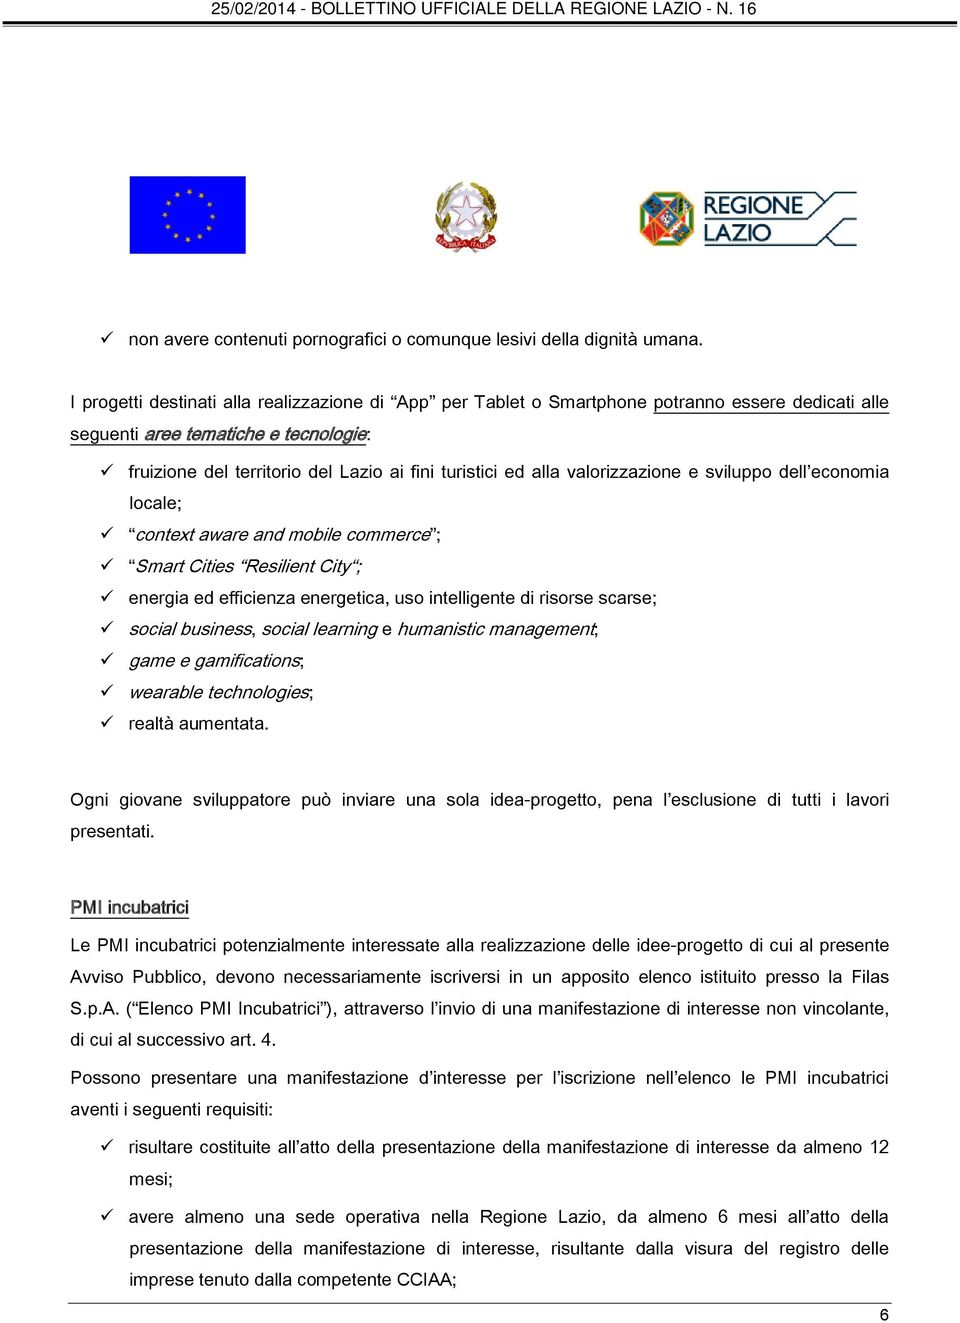 valorizzazione e sviluppo dell economia locale; context aware and mobile commerce ; Smart Cities Resilient City ; energia ed efficienza energetica, uso intelligente di risorse scarse; social